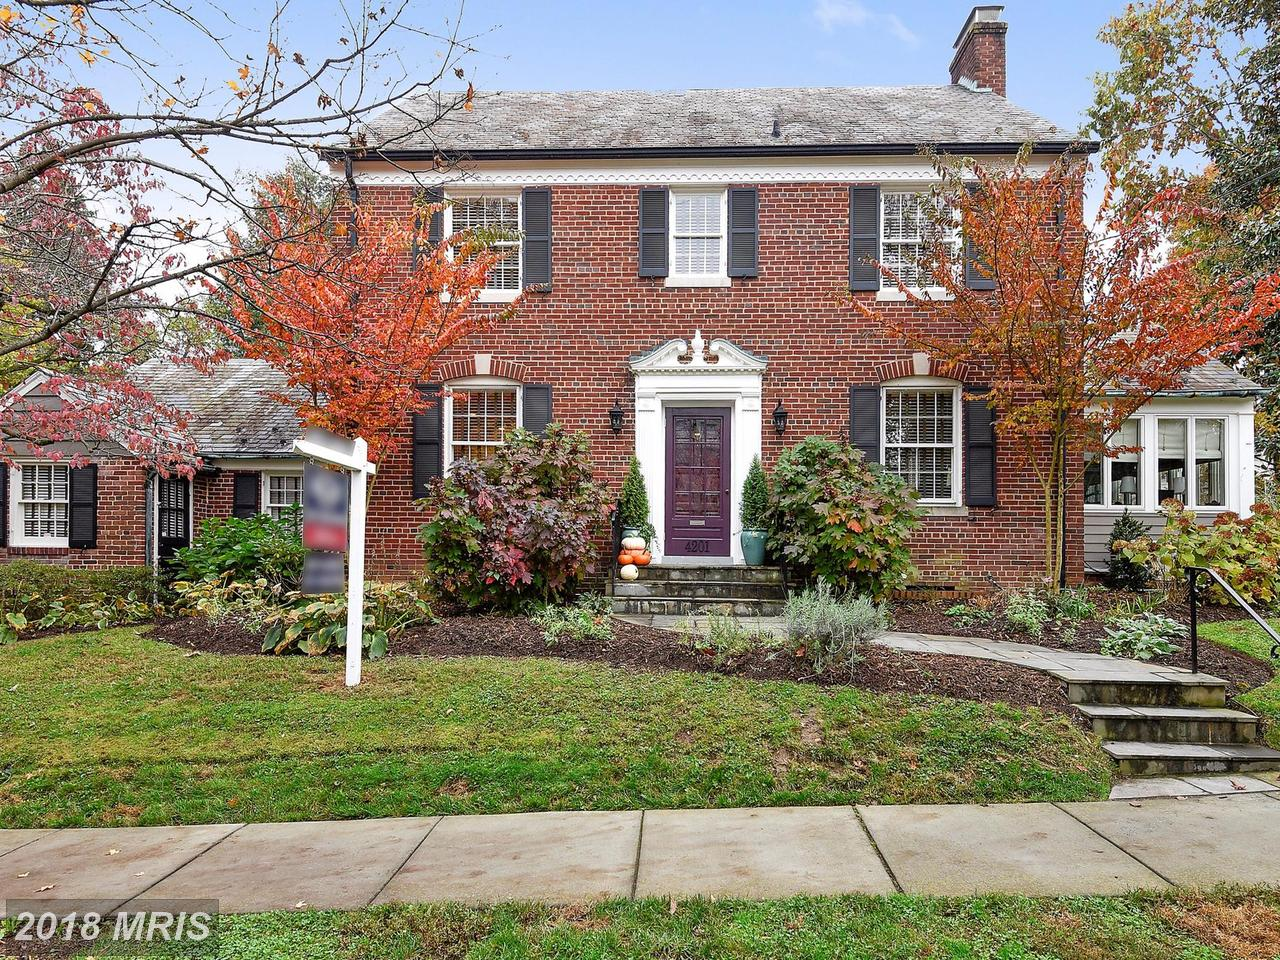 Single Family Home for Sale at Colonial, Detached - WASHINGTON, DC 4201 FORDHAM RD NW Washington, District Of Columbia,20016 United States